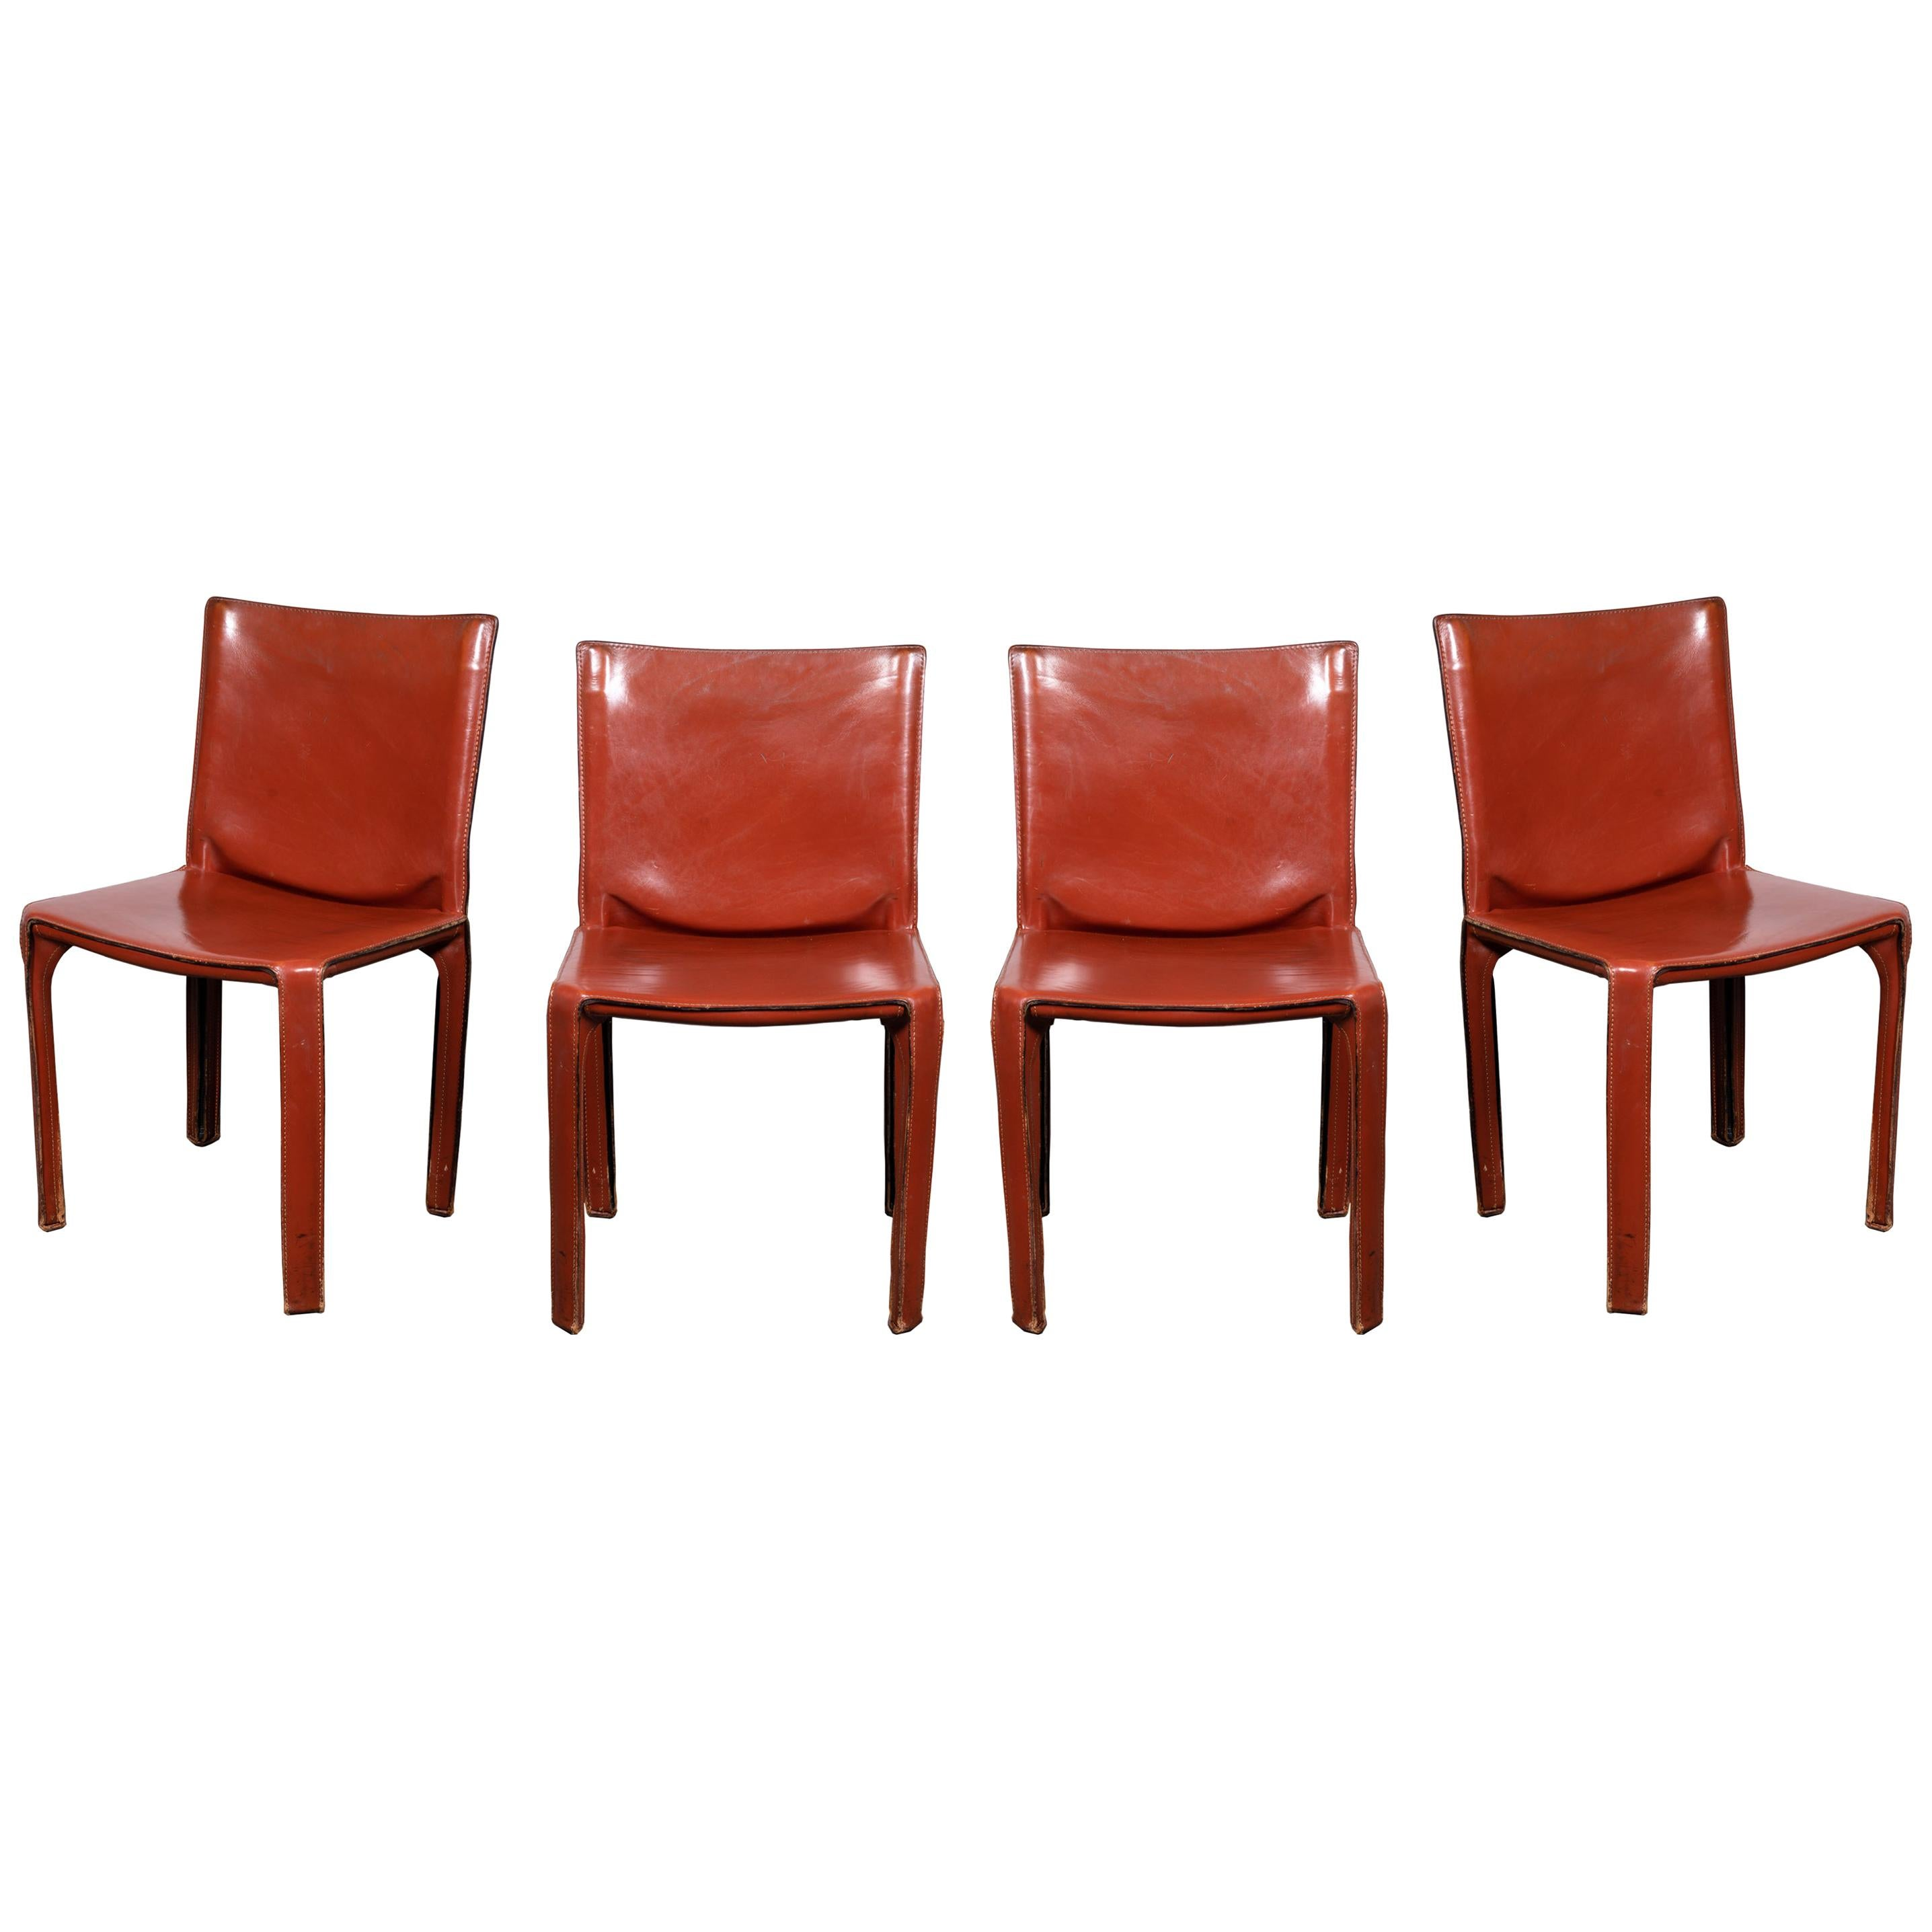 Mario Bellini CAB 412 Chairs in Cognac Leather for Cassina